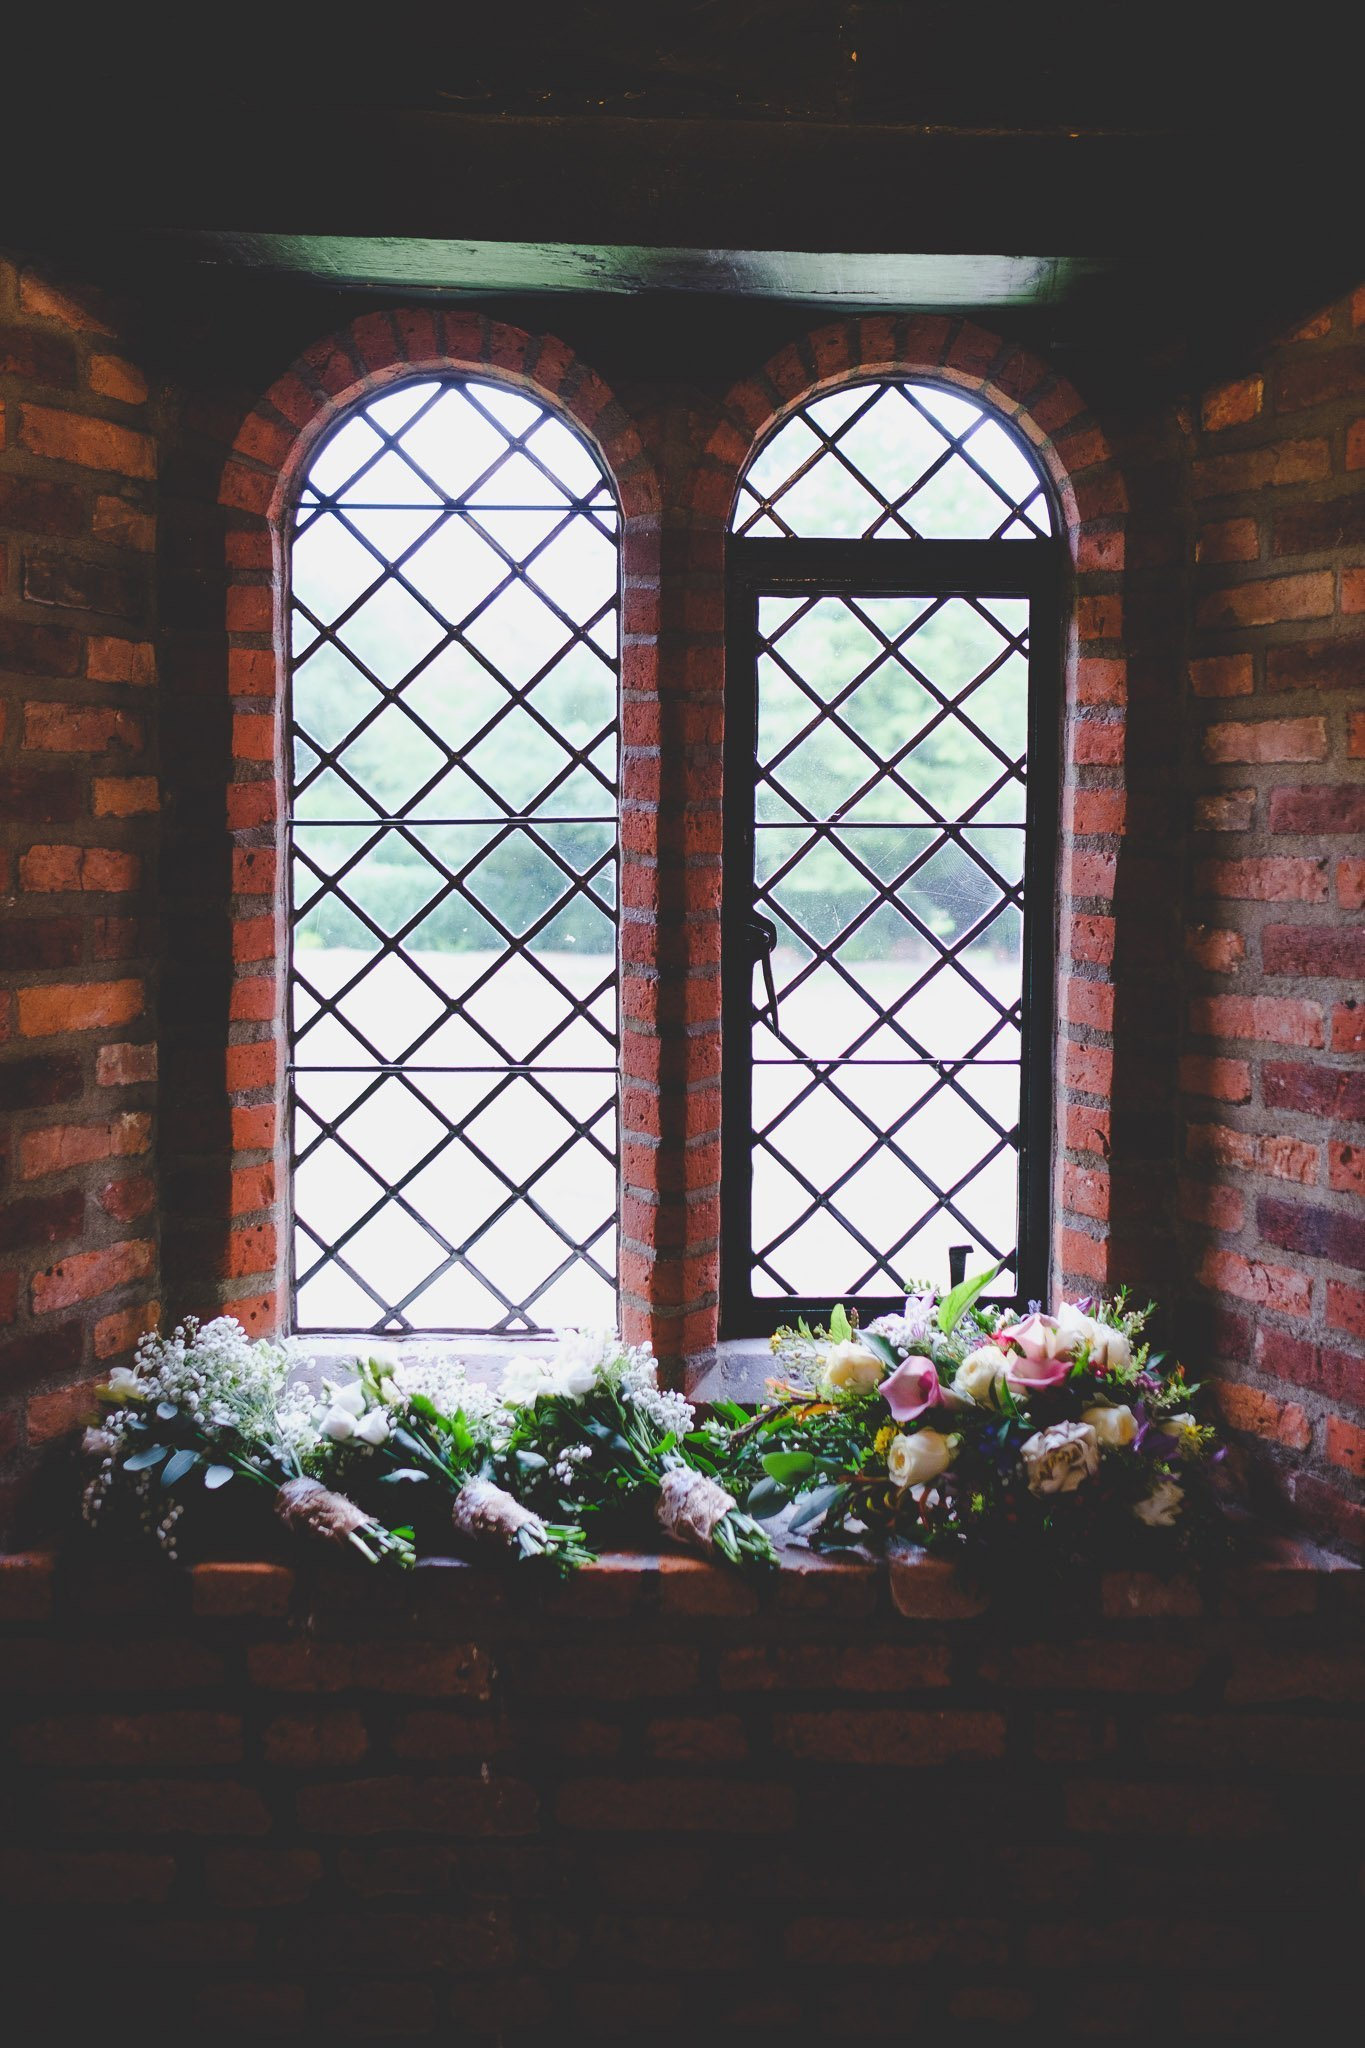 Bridal bouquets on a brick windowsill at Leez Pirory wedding venue